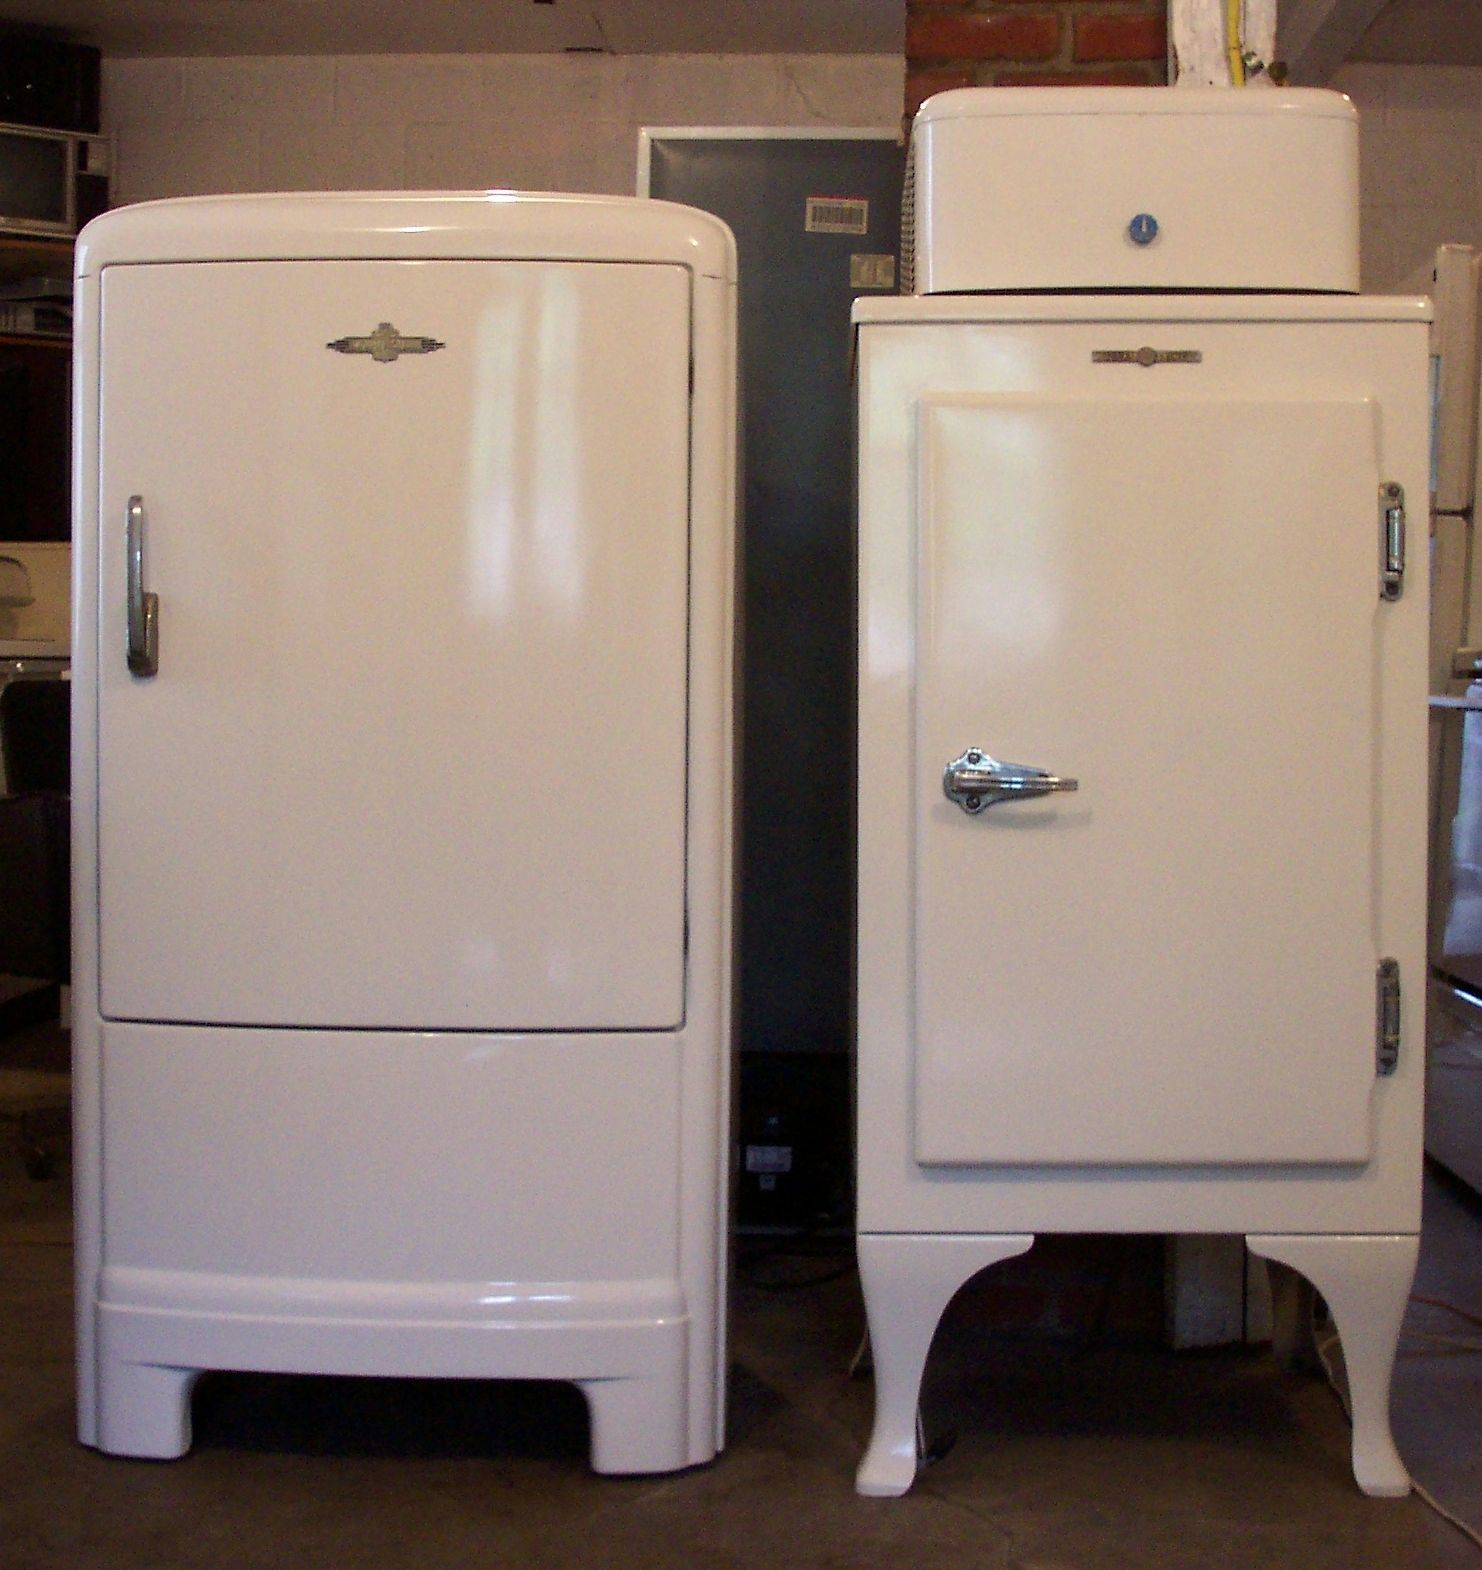 Frigidaire Vintage Fridge Vintage Refrigerator Vintage Kitchen Appliances